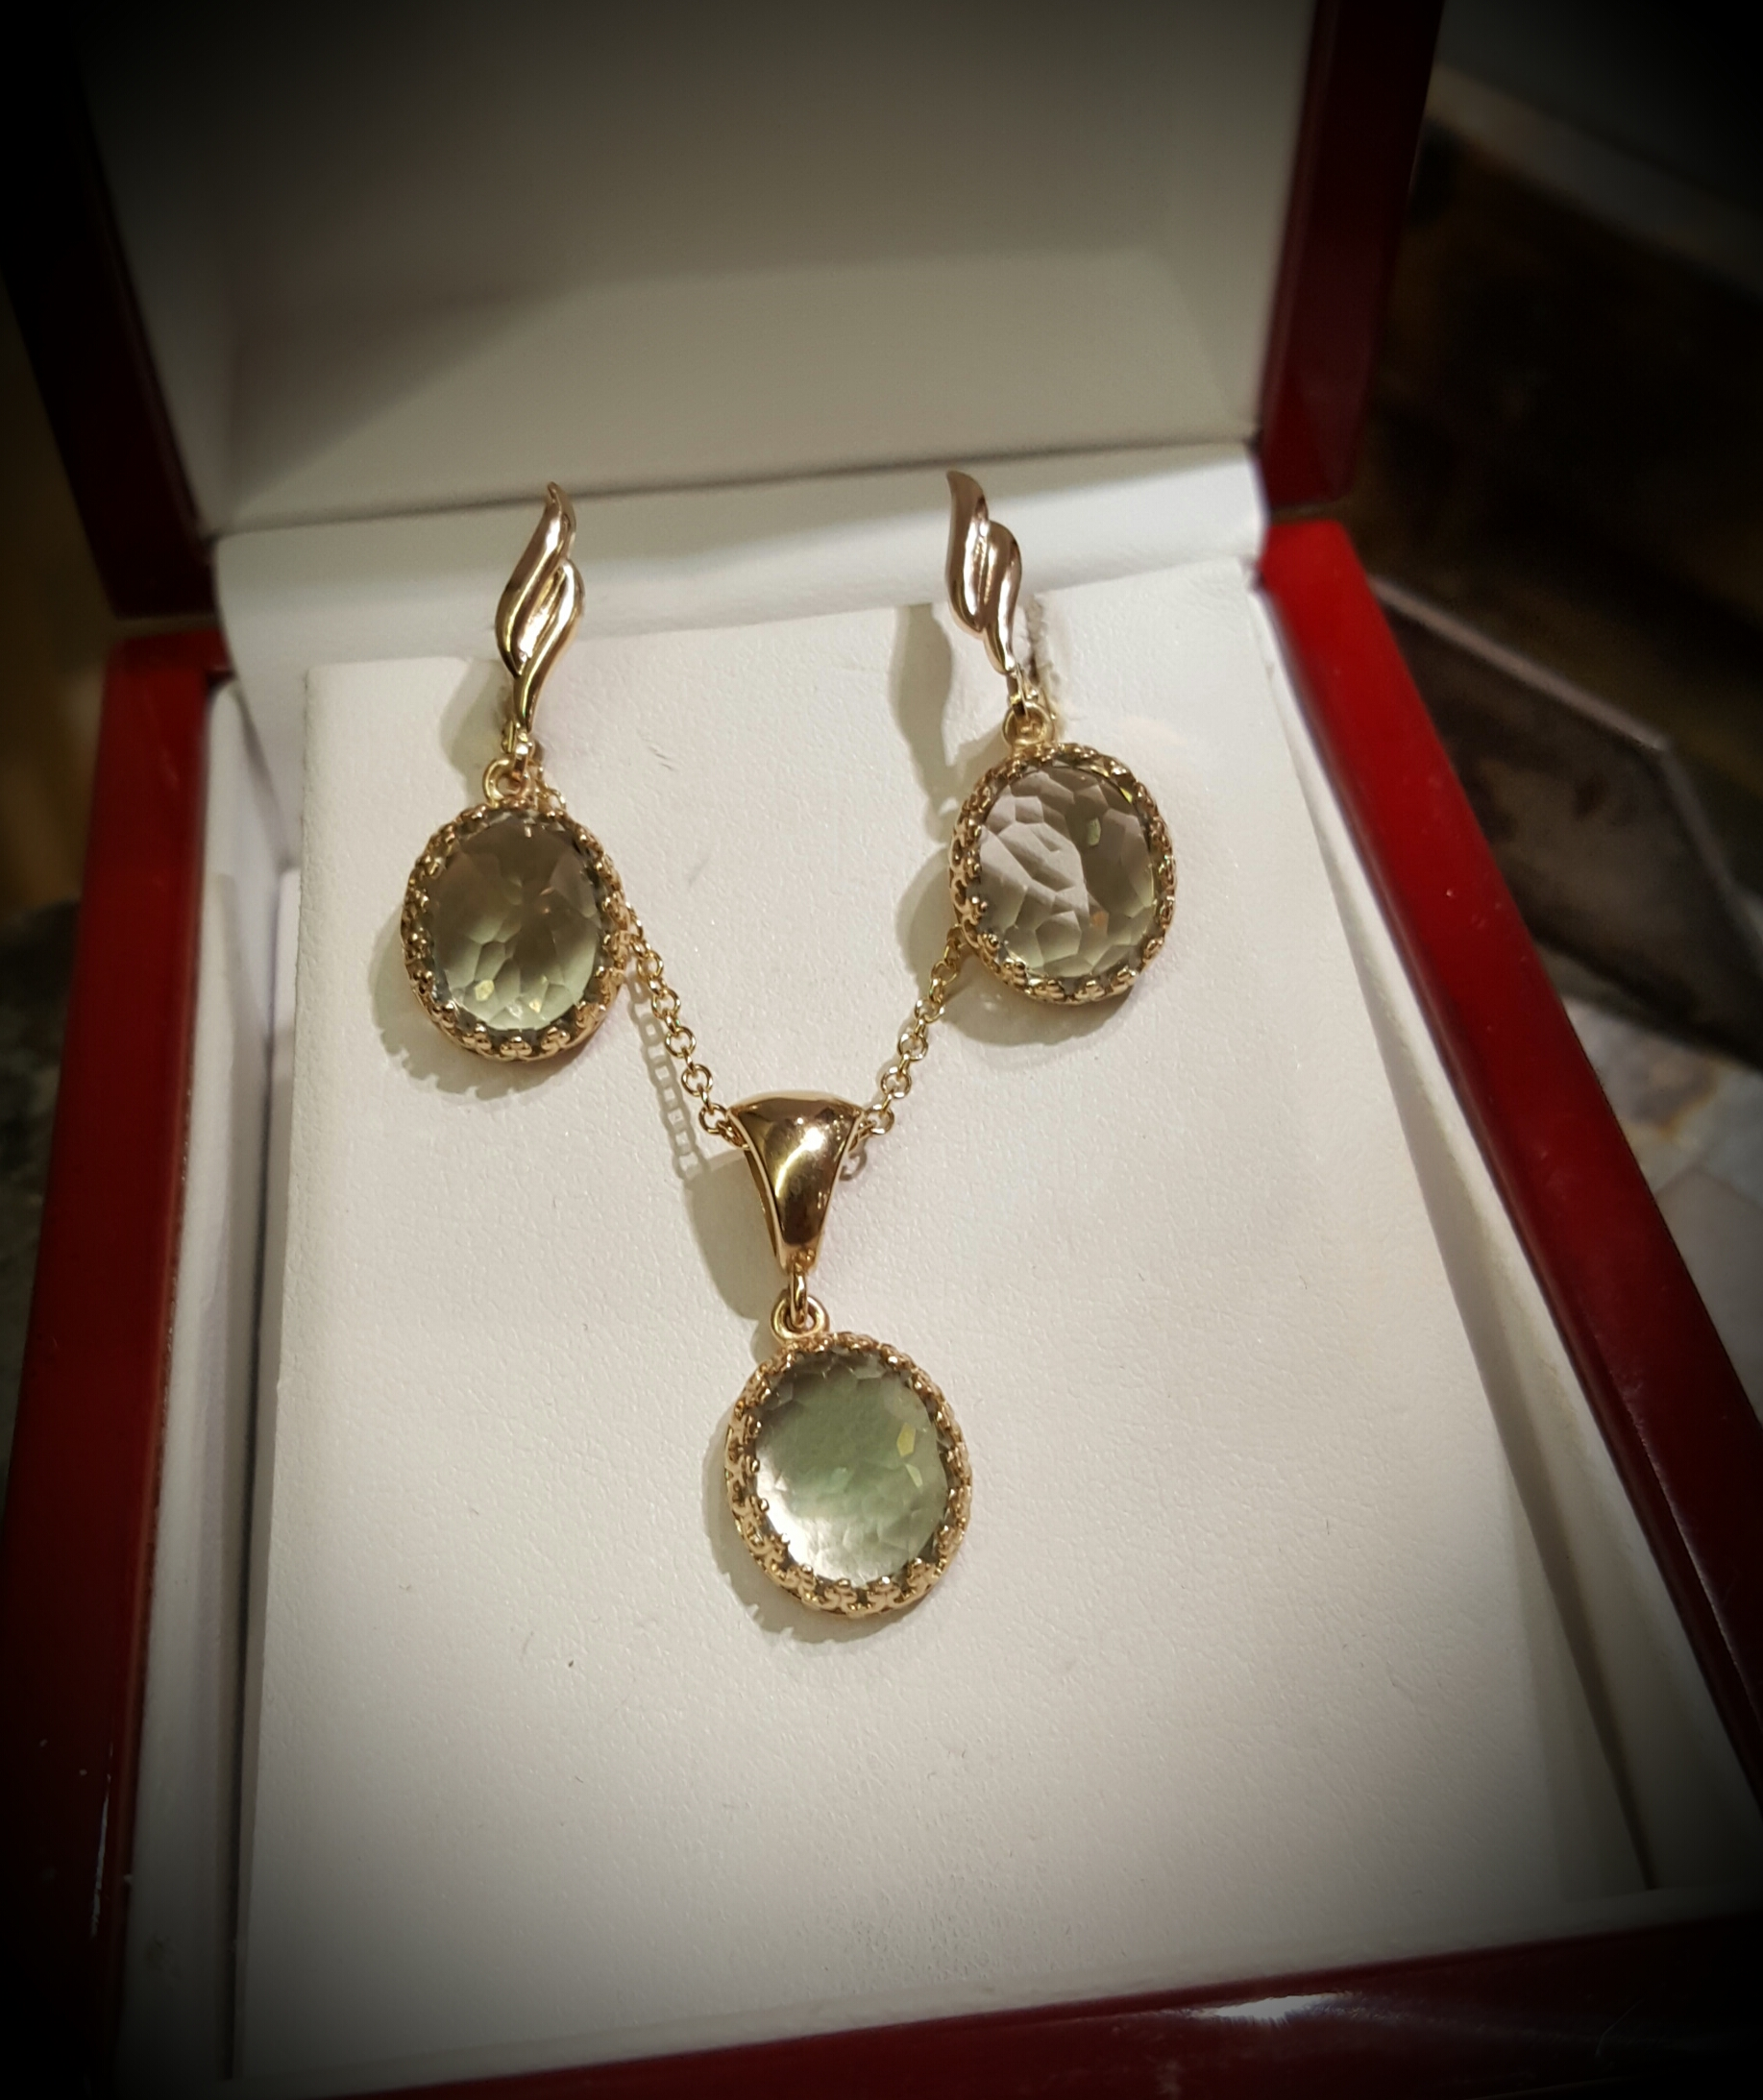 Prasiolite Pendant & Earrings